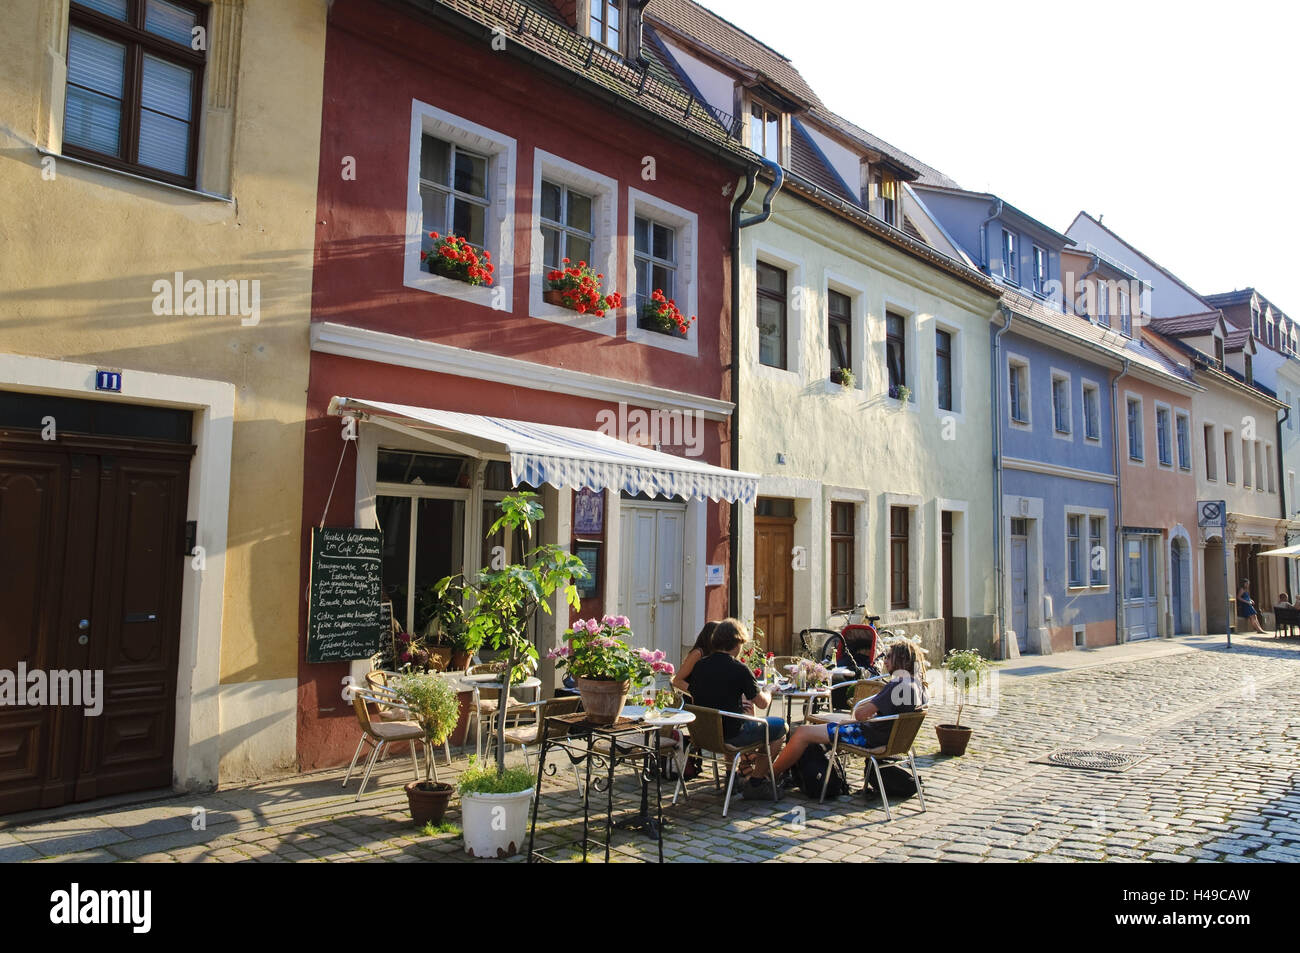 Schmiedestrasse, Old Town, Pirna, Saxon, Germany, - Stock Image